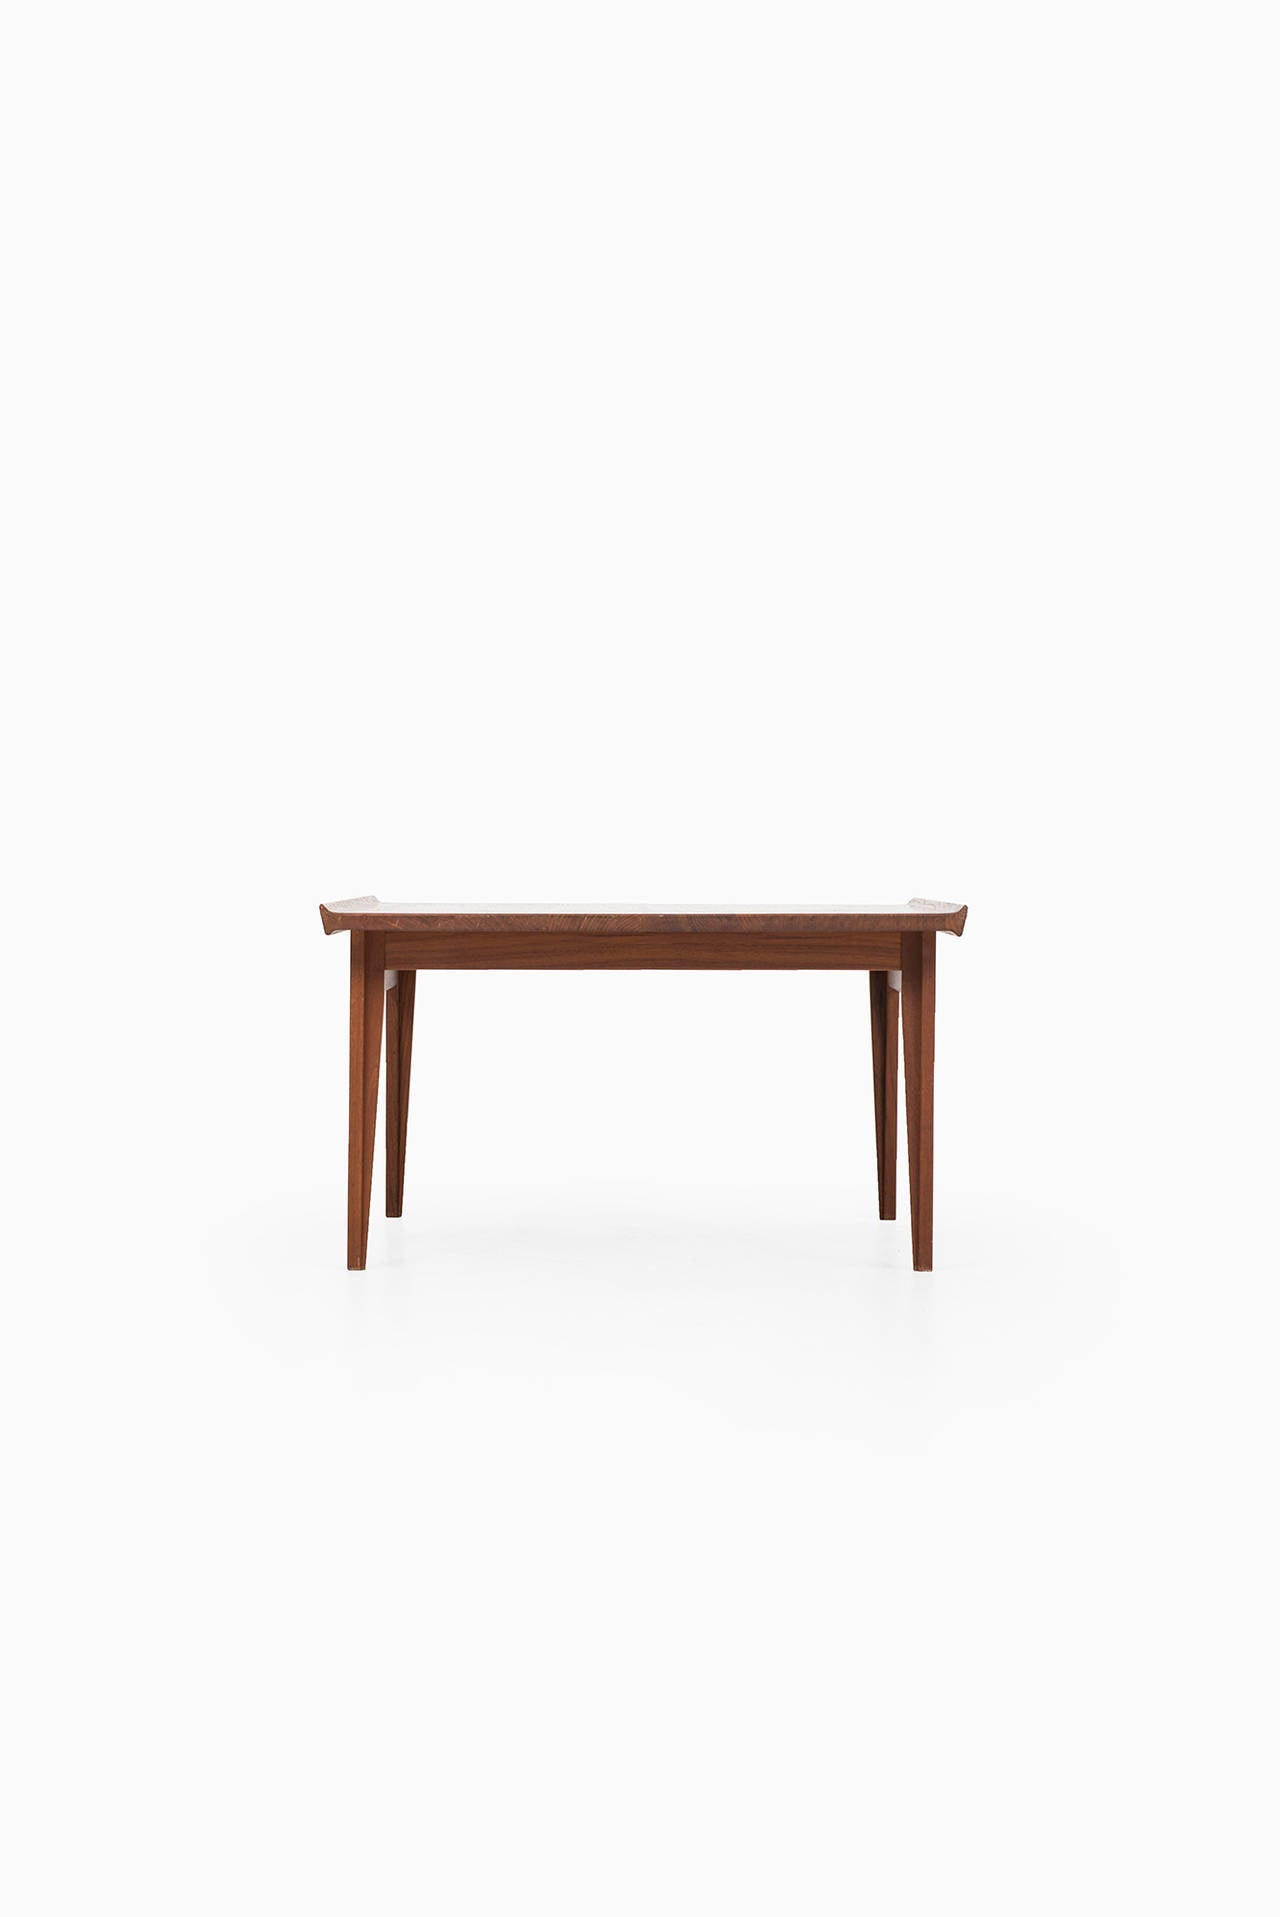 Finn Juhl Coffee Table Model 533 by France and S¸n in Denmark For